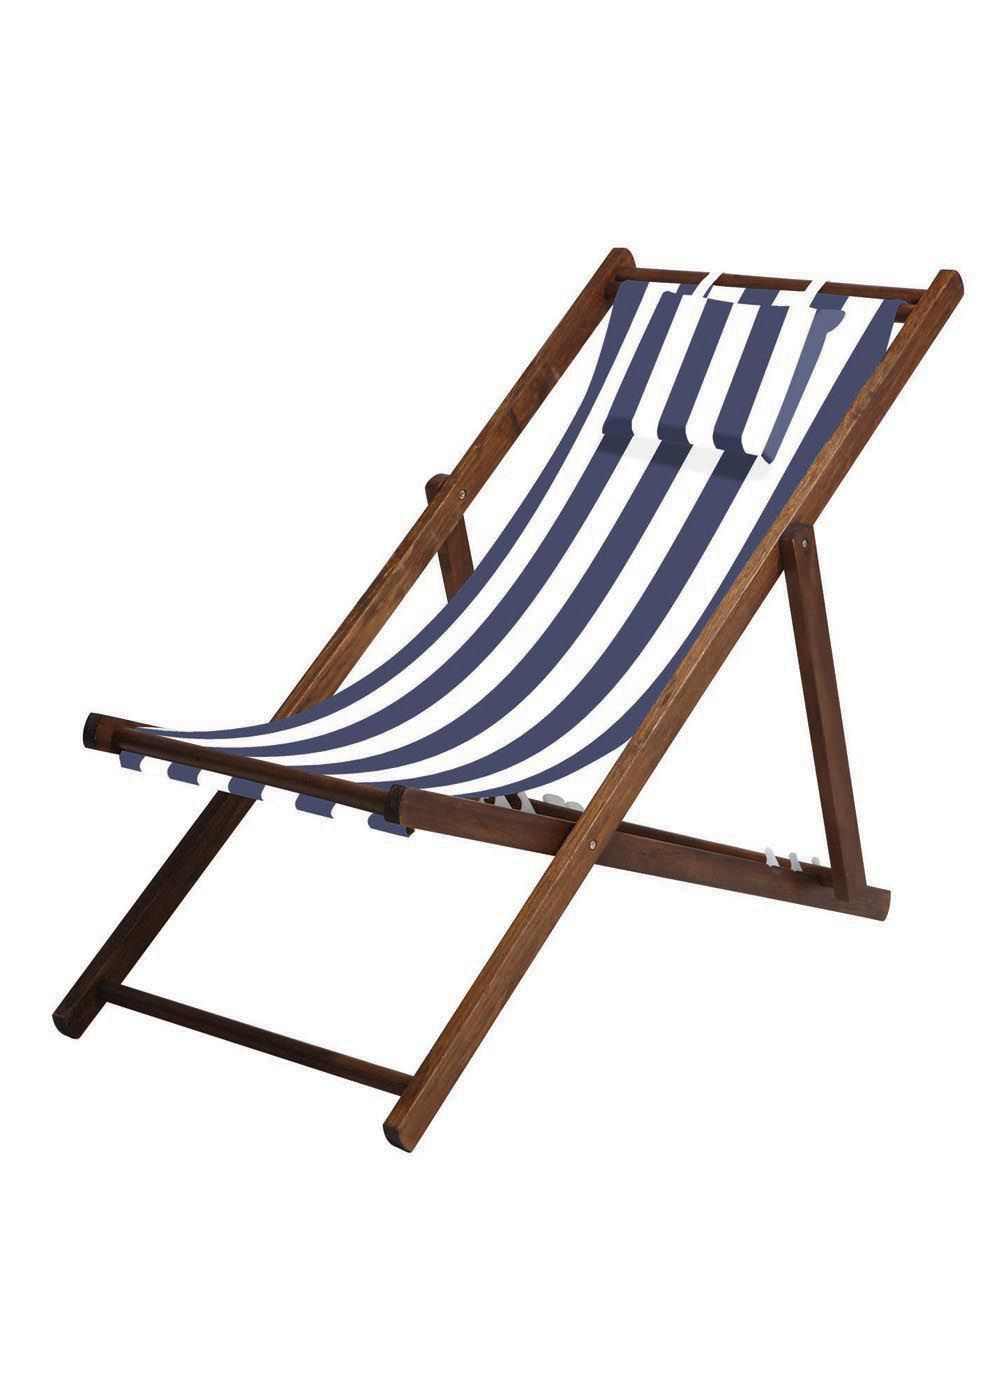 Striped Deck Chair For Around Pool